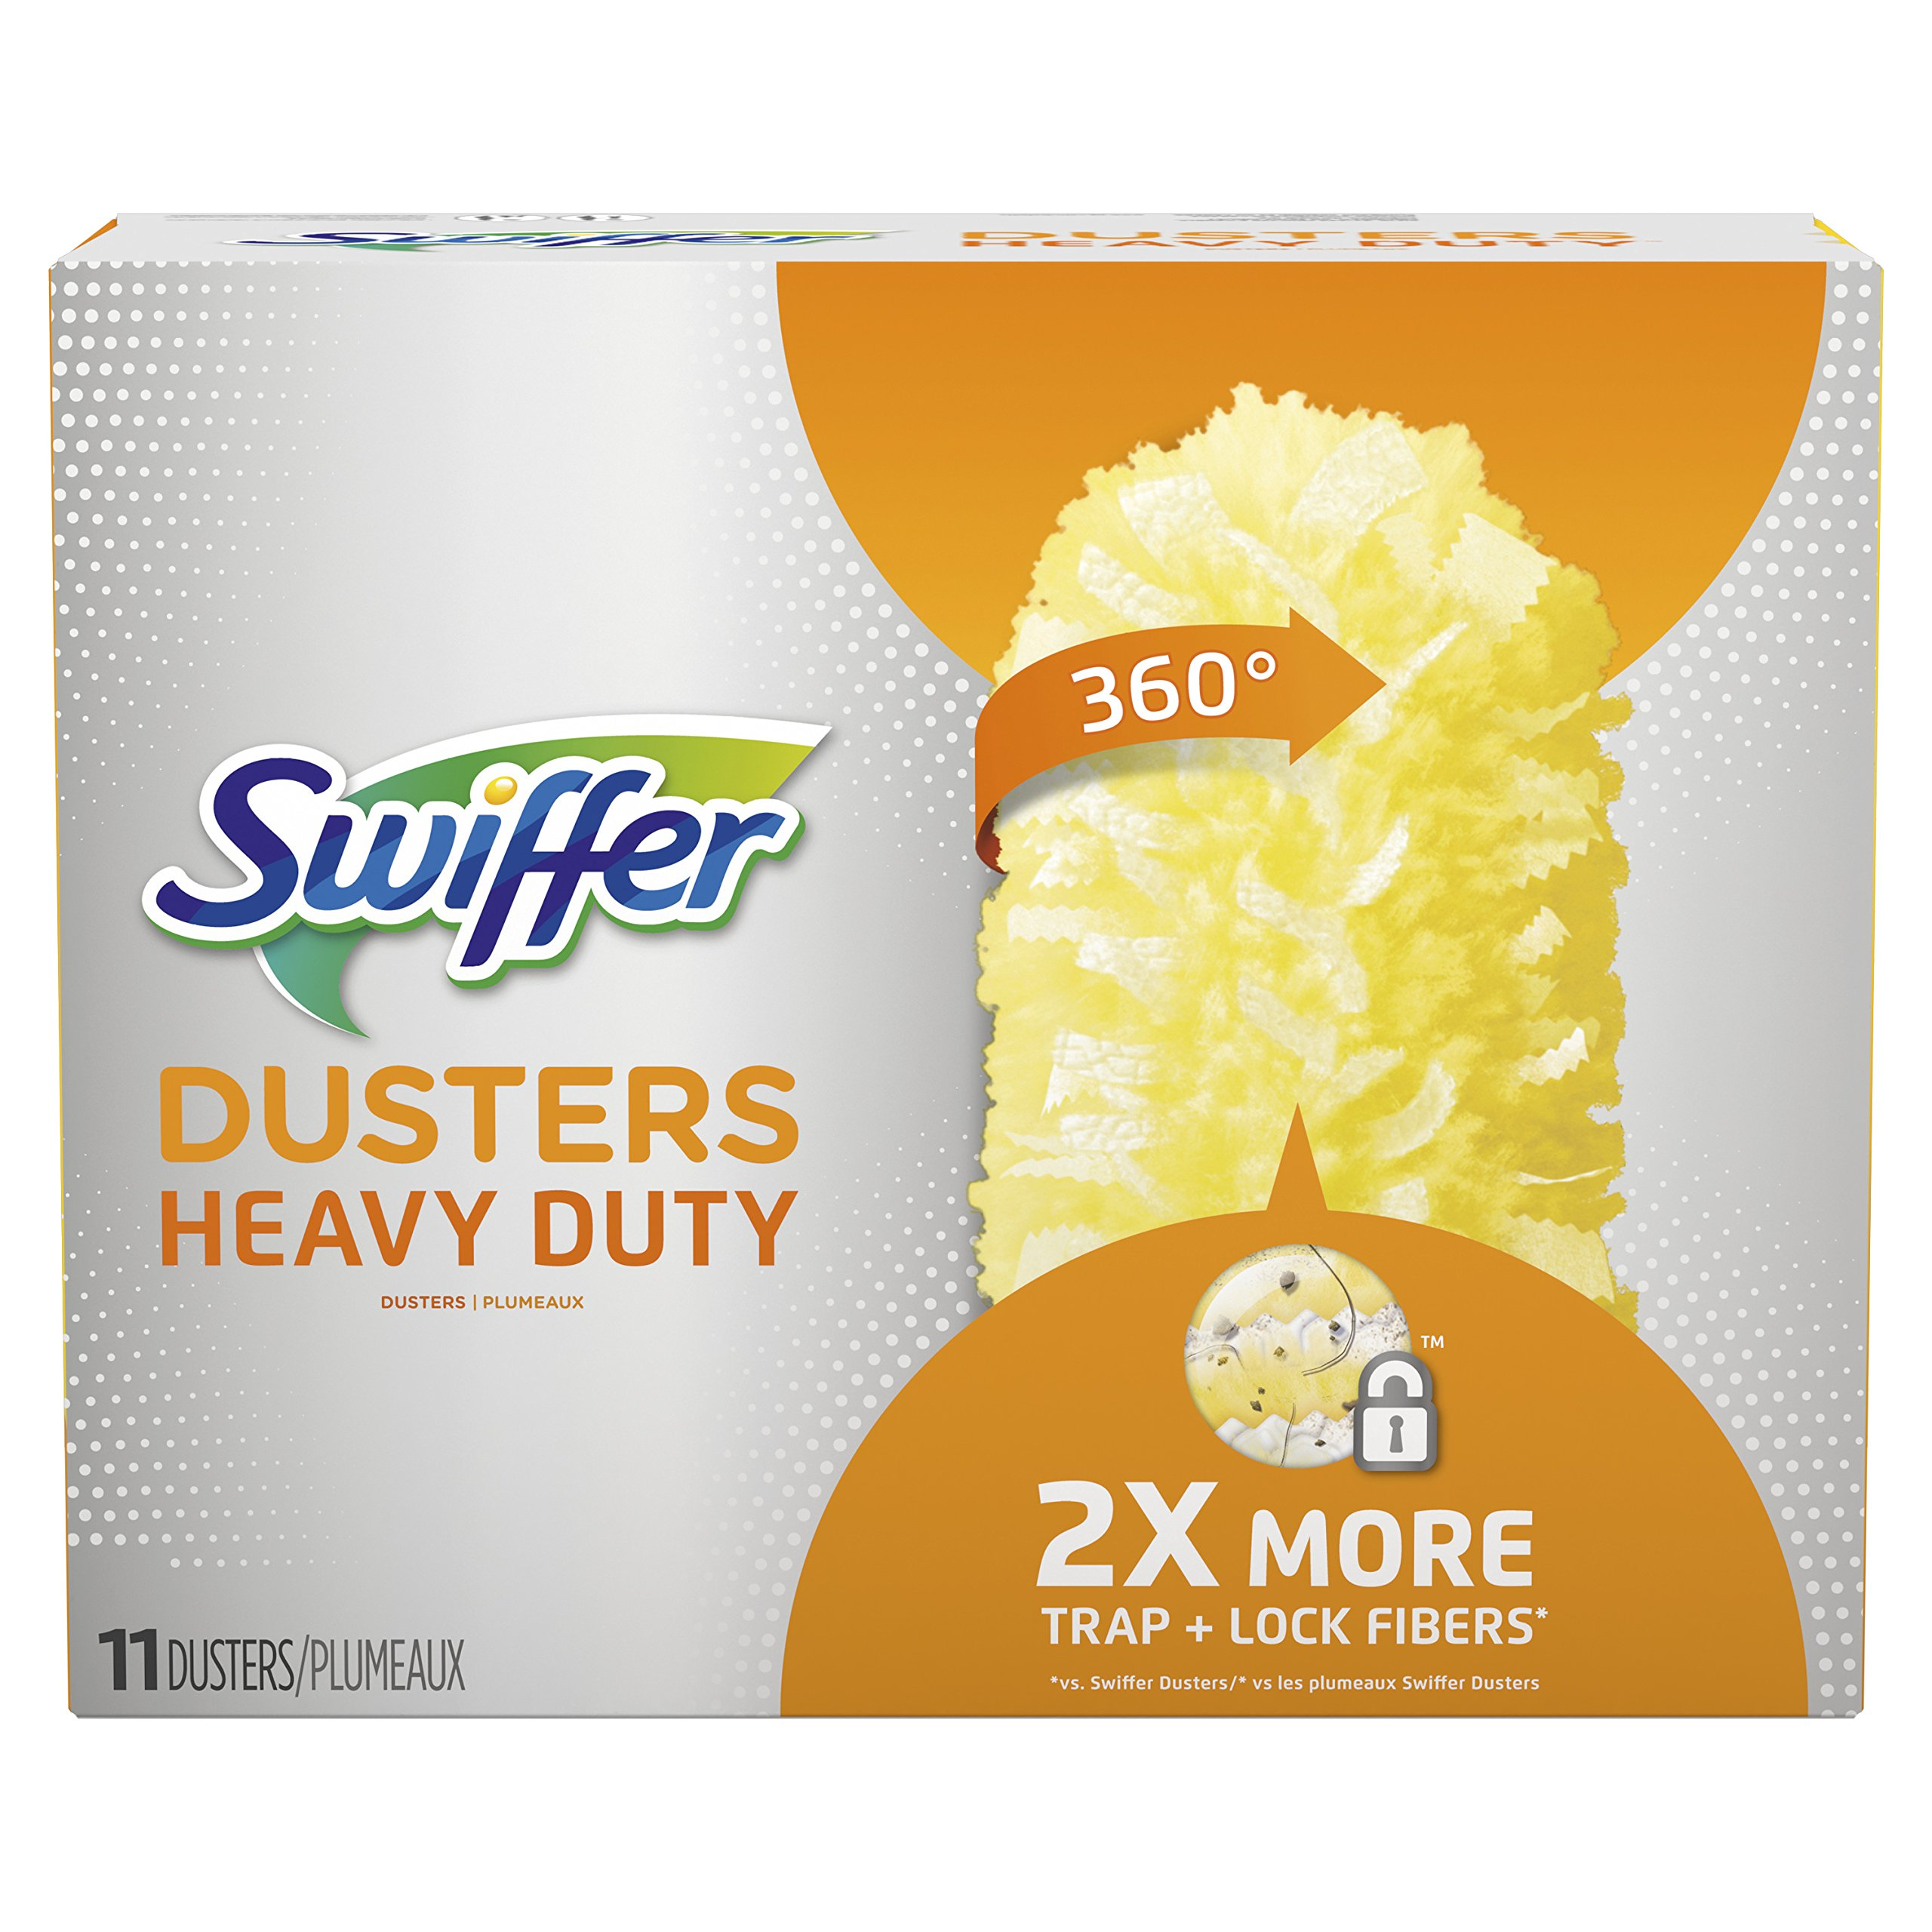 Swiffer 360 Dusters, Heavy Duty Refills, 11 Count by Swiffer